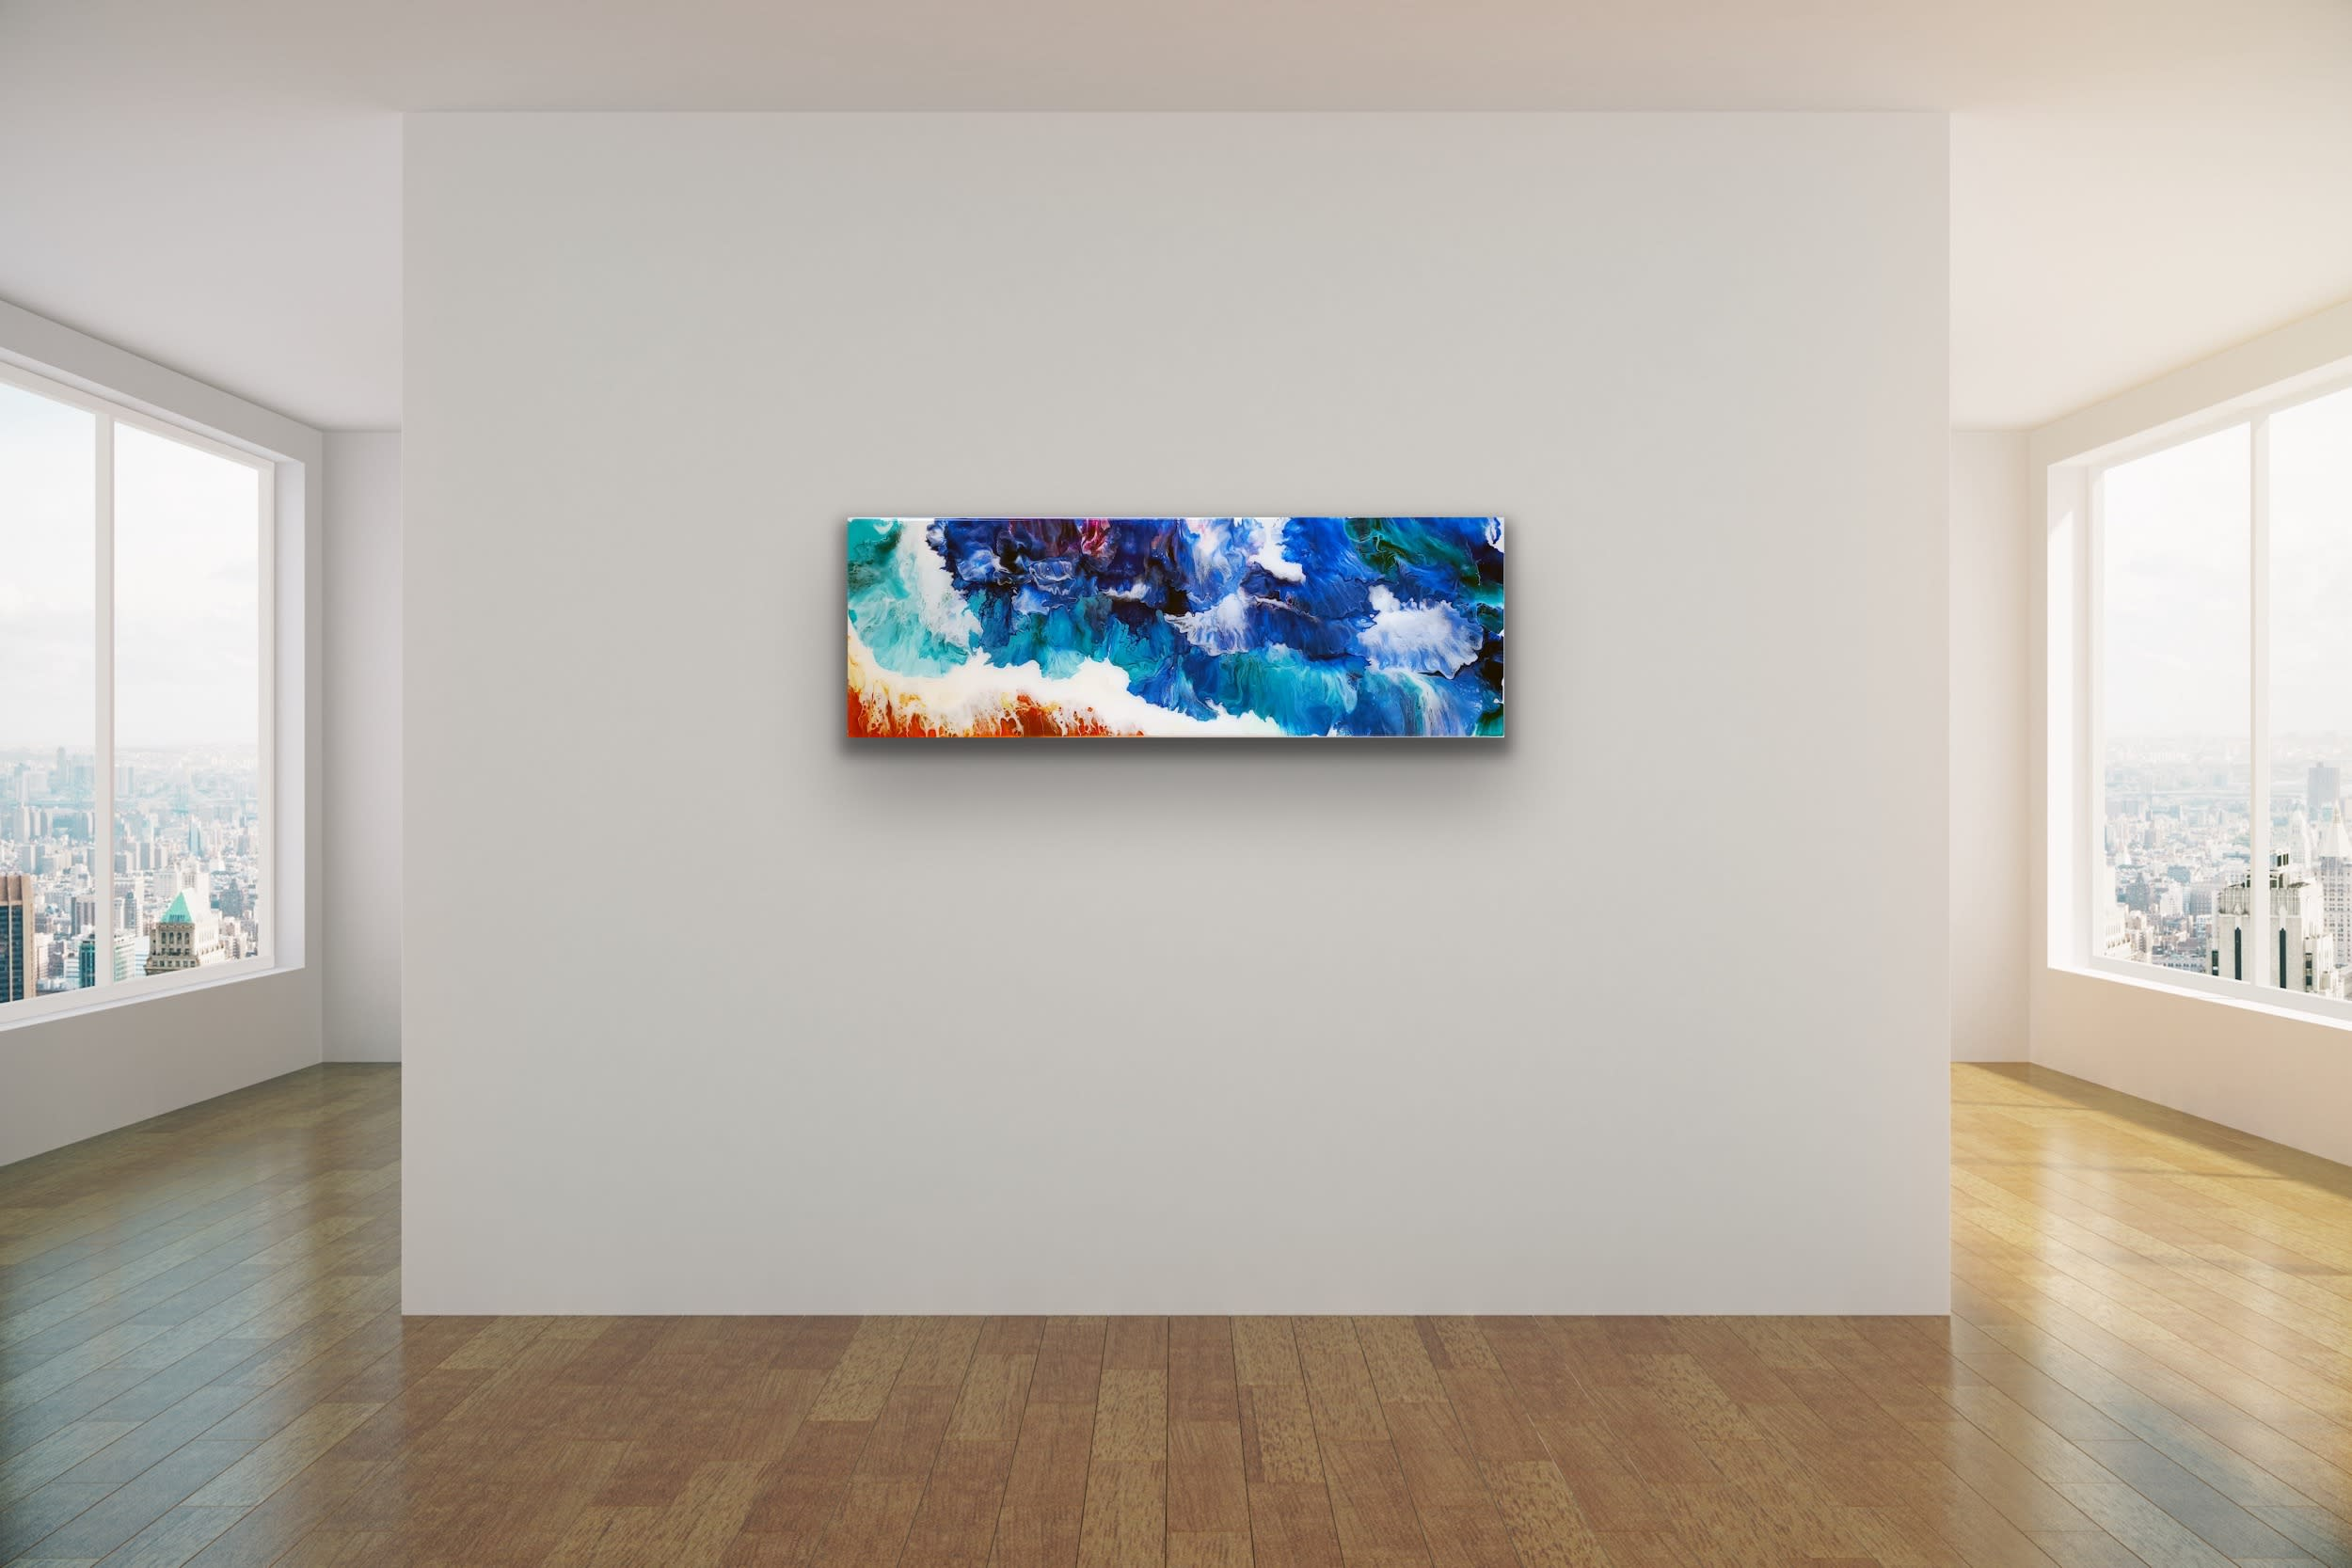 <div class='title'>           Melanie Burns Mock Ups Evo Art Maui Lahaina Front Street Hawaii Blue Ocean Abstract Sea Tropical Ocean Collage Water Resin Epoxy Pour Acrylic Shiny Glossy 28         </div>